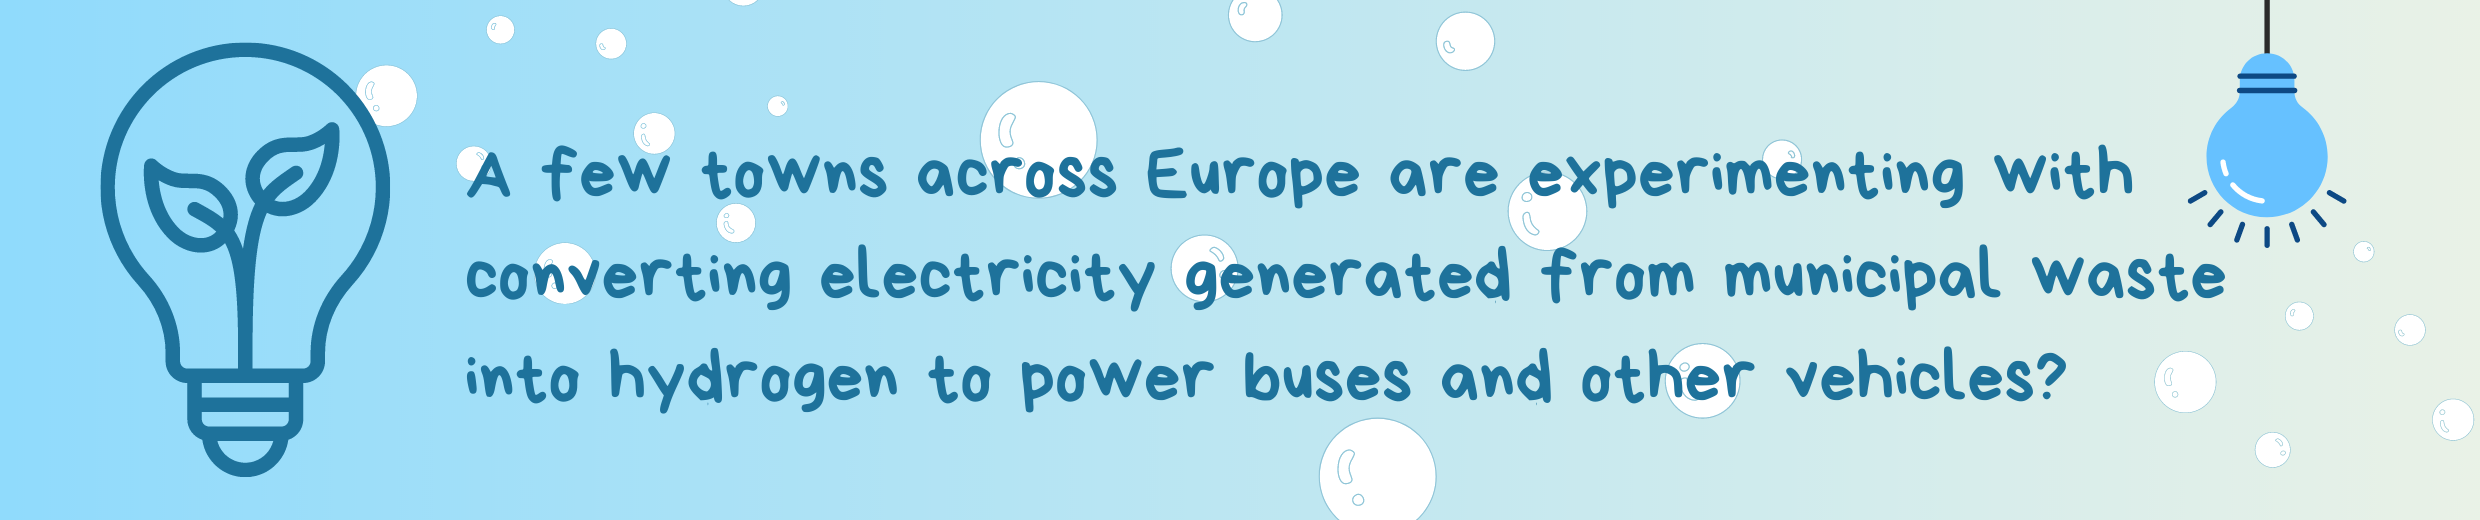 A few towns across Europe are experimenting with converting electricity generated from municipal waste into hydrogen to power buses and other vehicles?